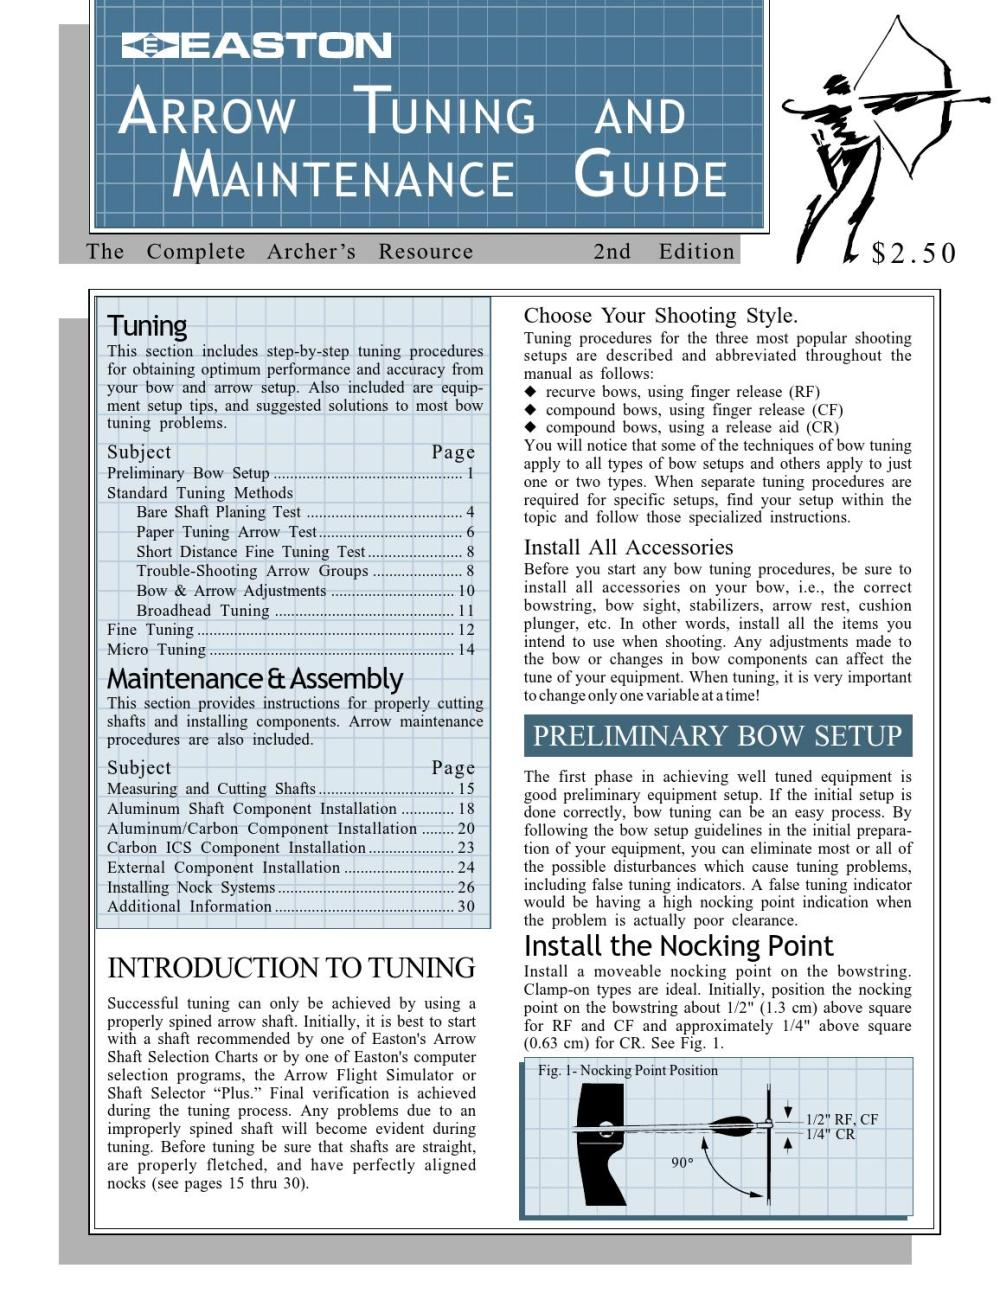 medium resolution of easton arrow tuning maintenance guide archery complete tuning guide by davy goedertier issuu